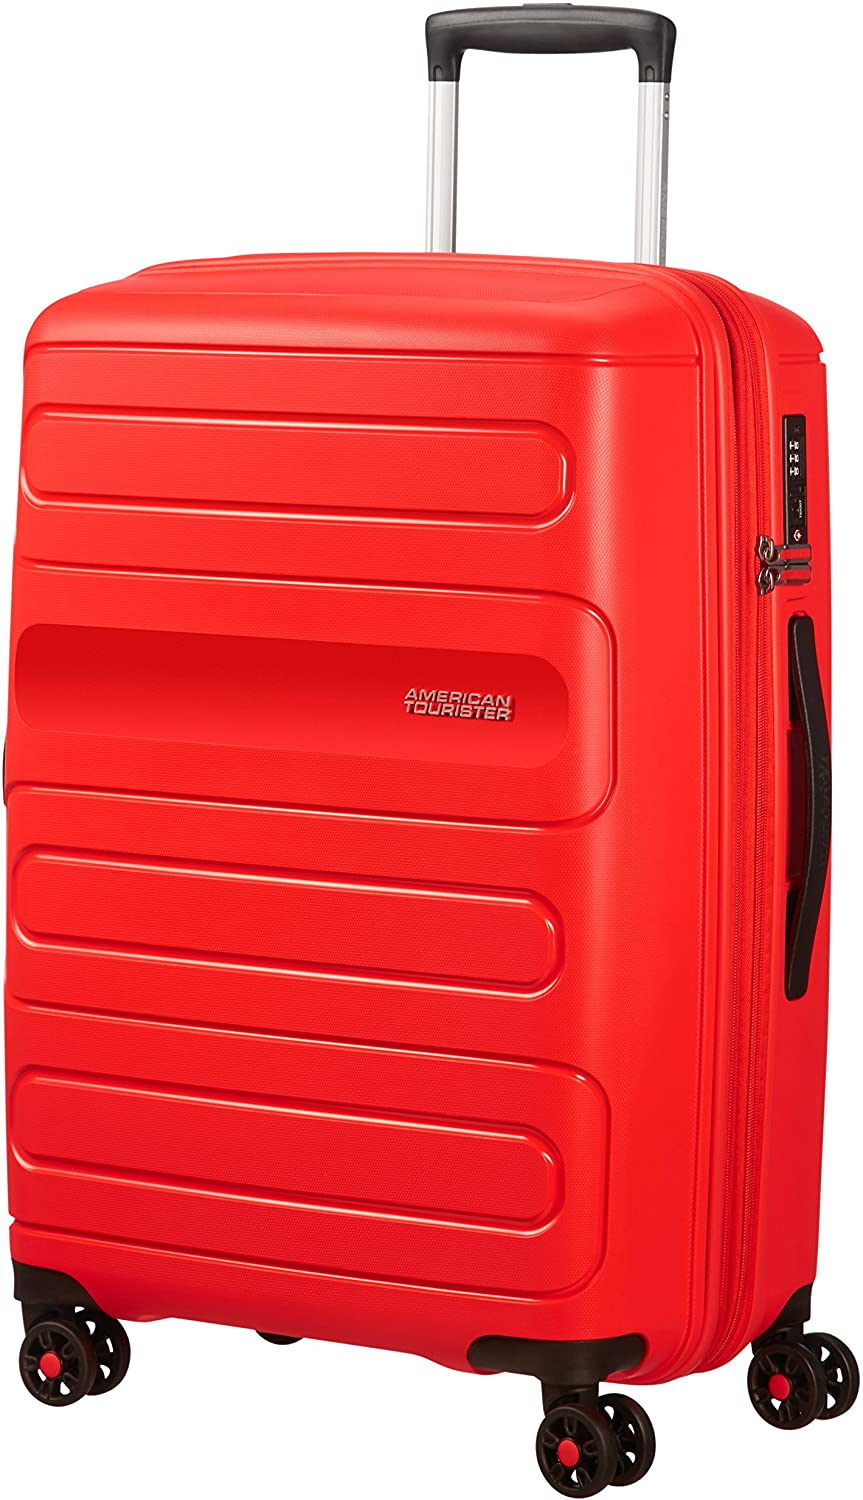 American Tourister Sunside Spinner 68 Expandible, 3.7 kg, 72.5/83.5 l, Rojo (Sunset Red)